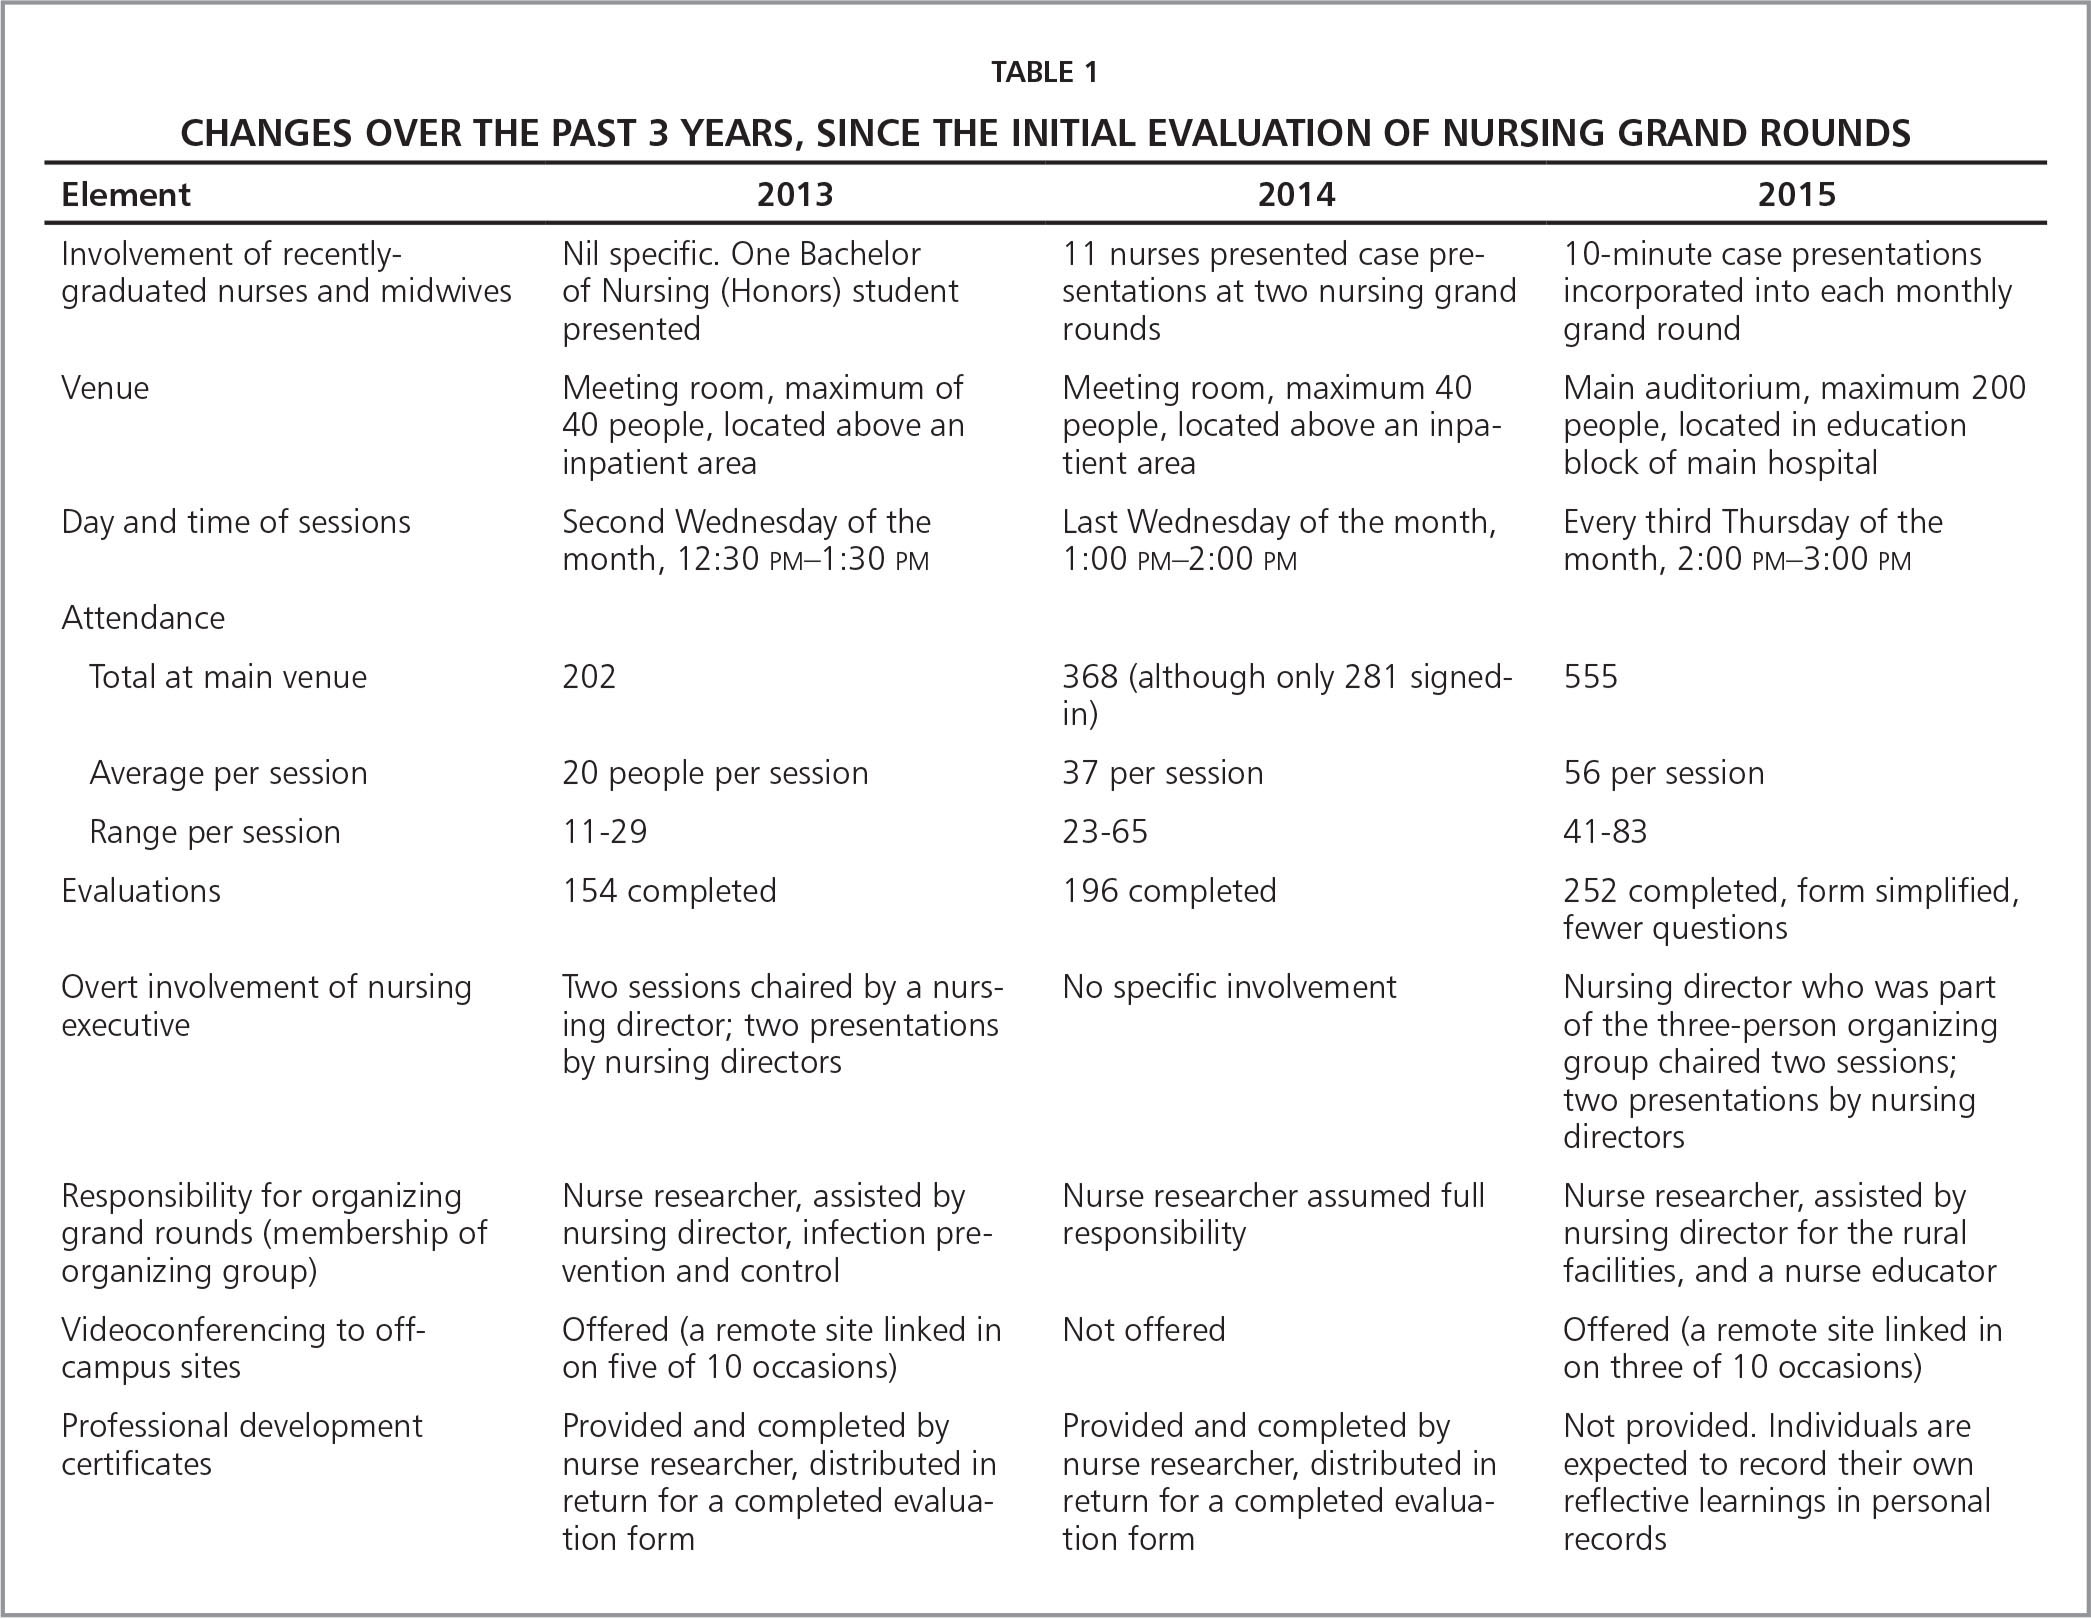 Changes Over the Past 3 Years, Since the Initial Evaluation of Nursing Grand Rounds